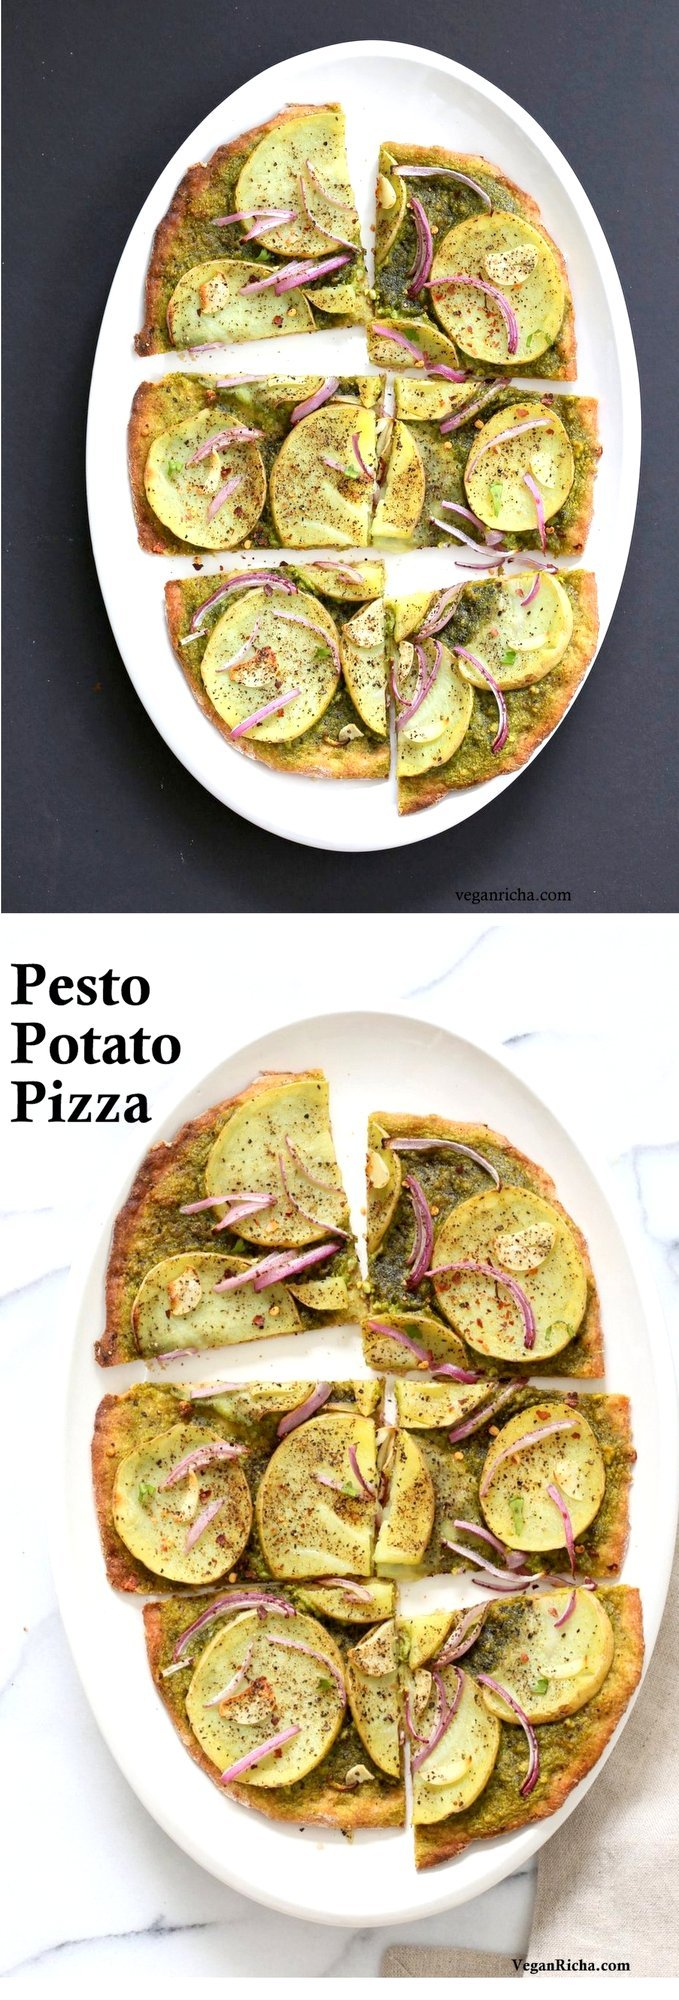 Easy Potato Pesto Pizza with 20 min Thin Crust. Basil Spinach Pesto makes for a refreshing Pizza base topping with thin potato slices, onion and garlic. Vegan Pesto Pizza Bake or make on the grill. Vegan Soyfree Recipe. | VeganRicha.com